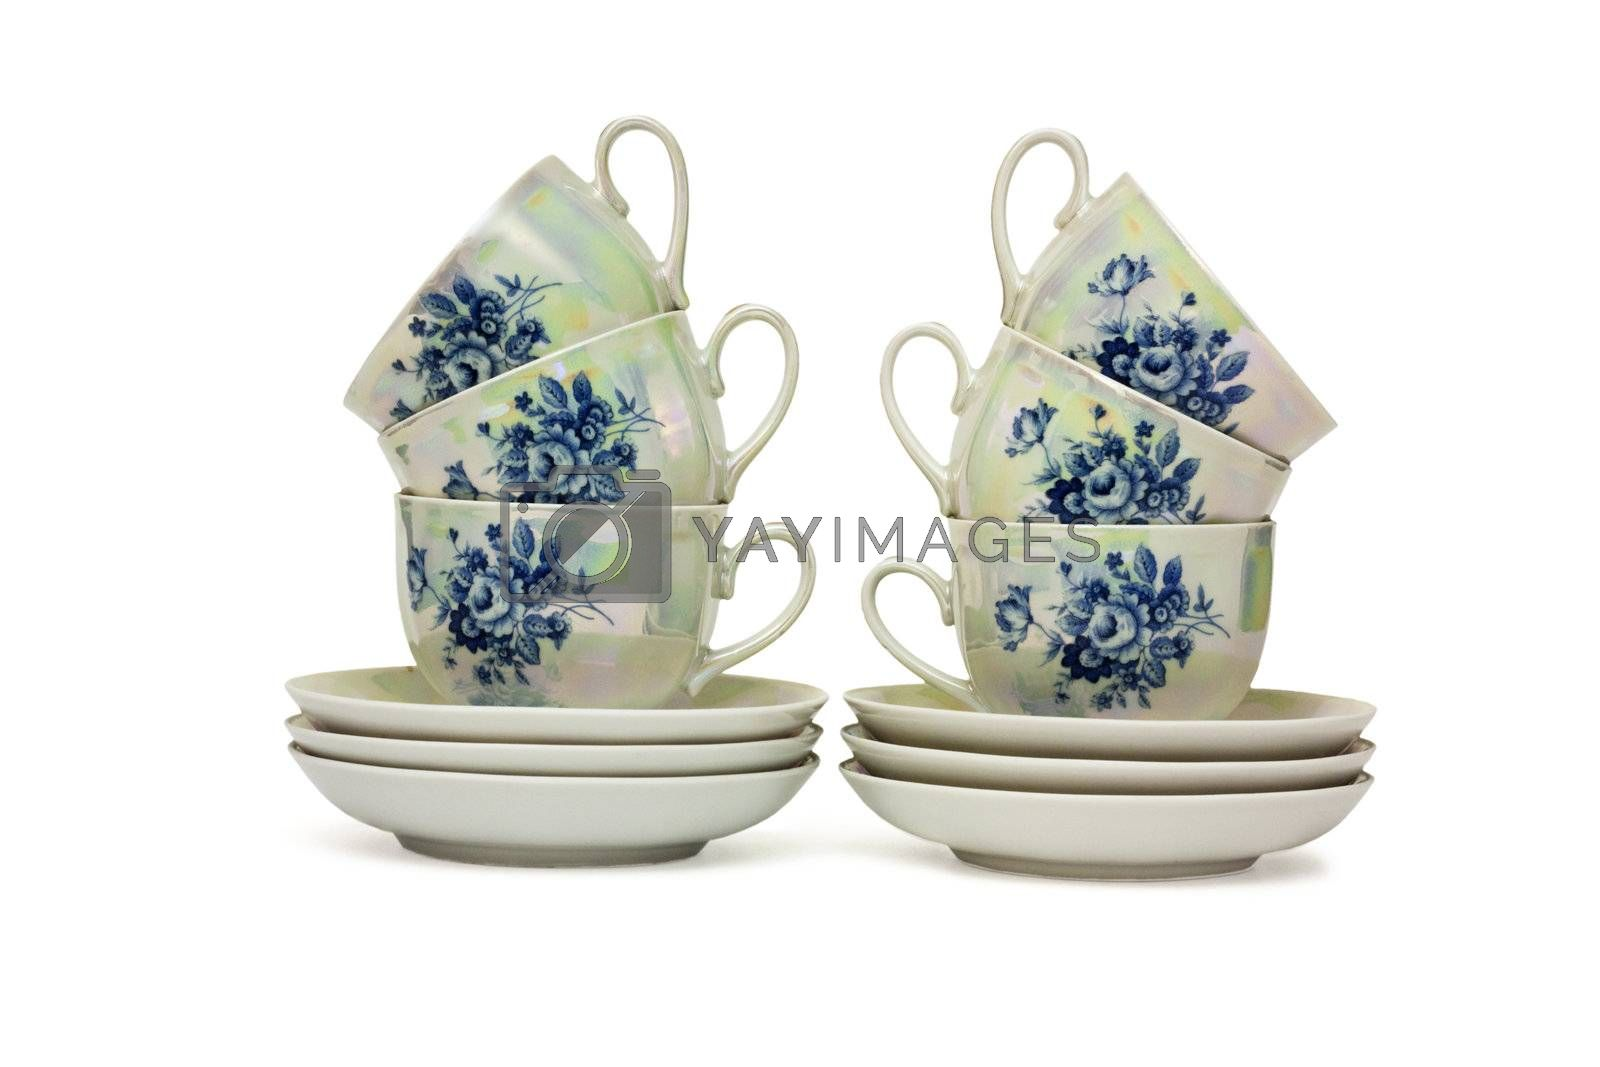 Service with six cups and saucers isolated on white